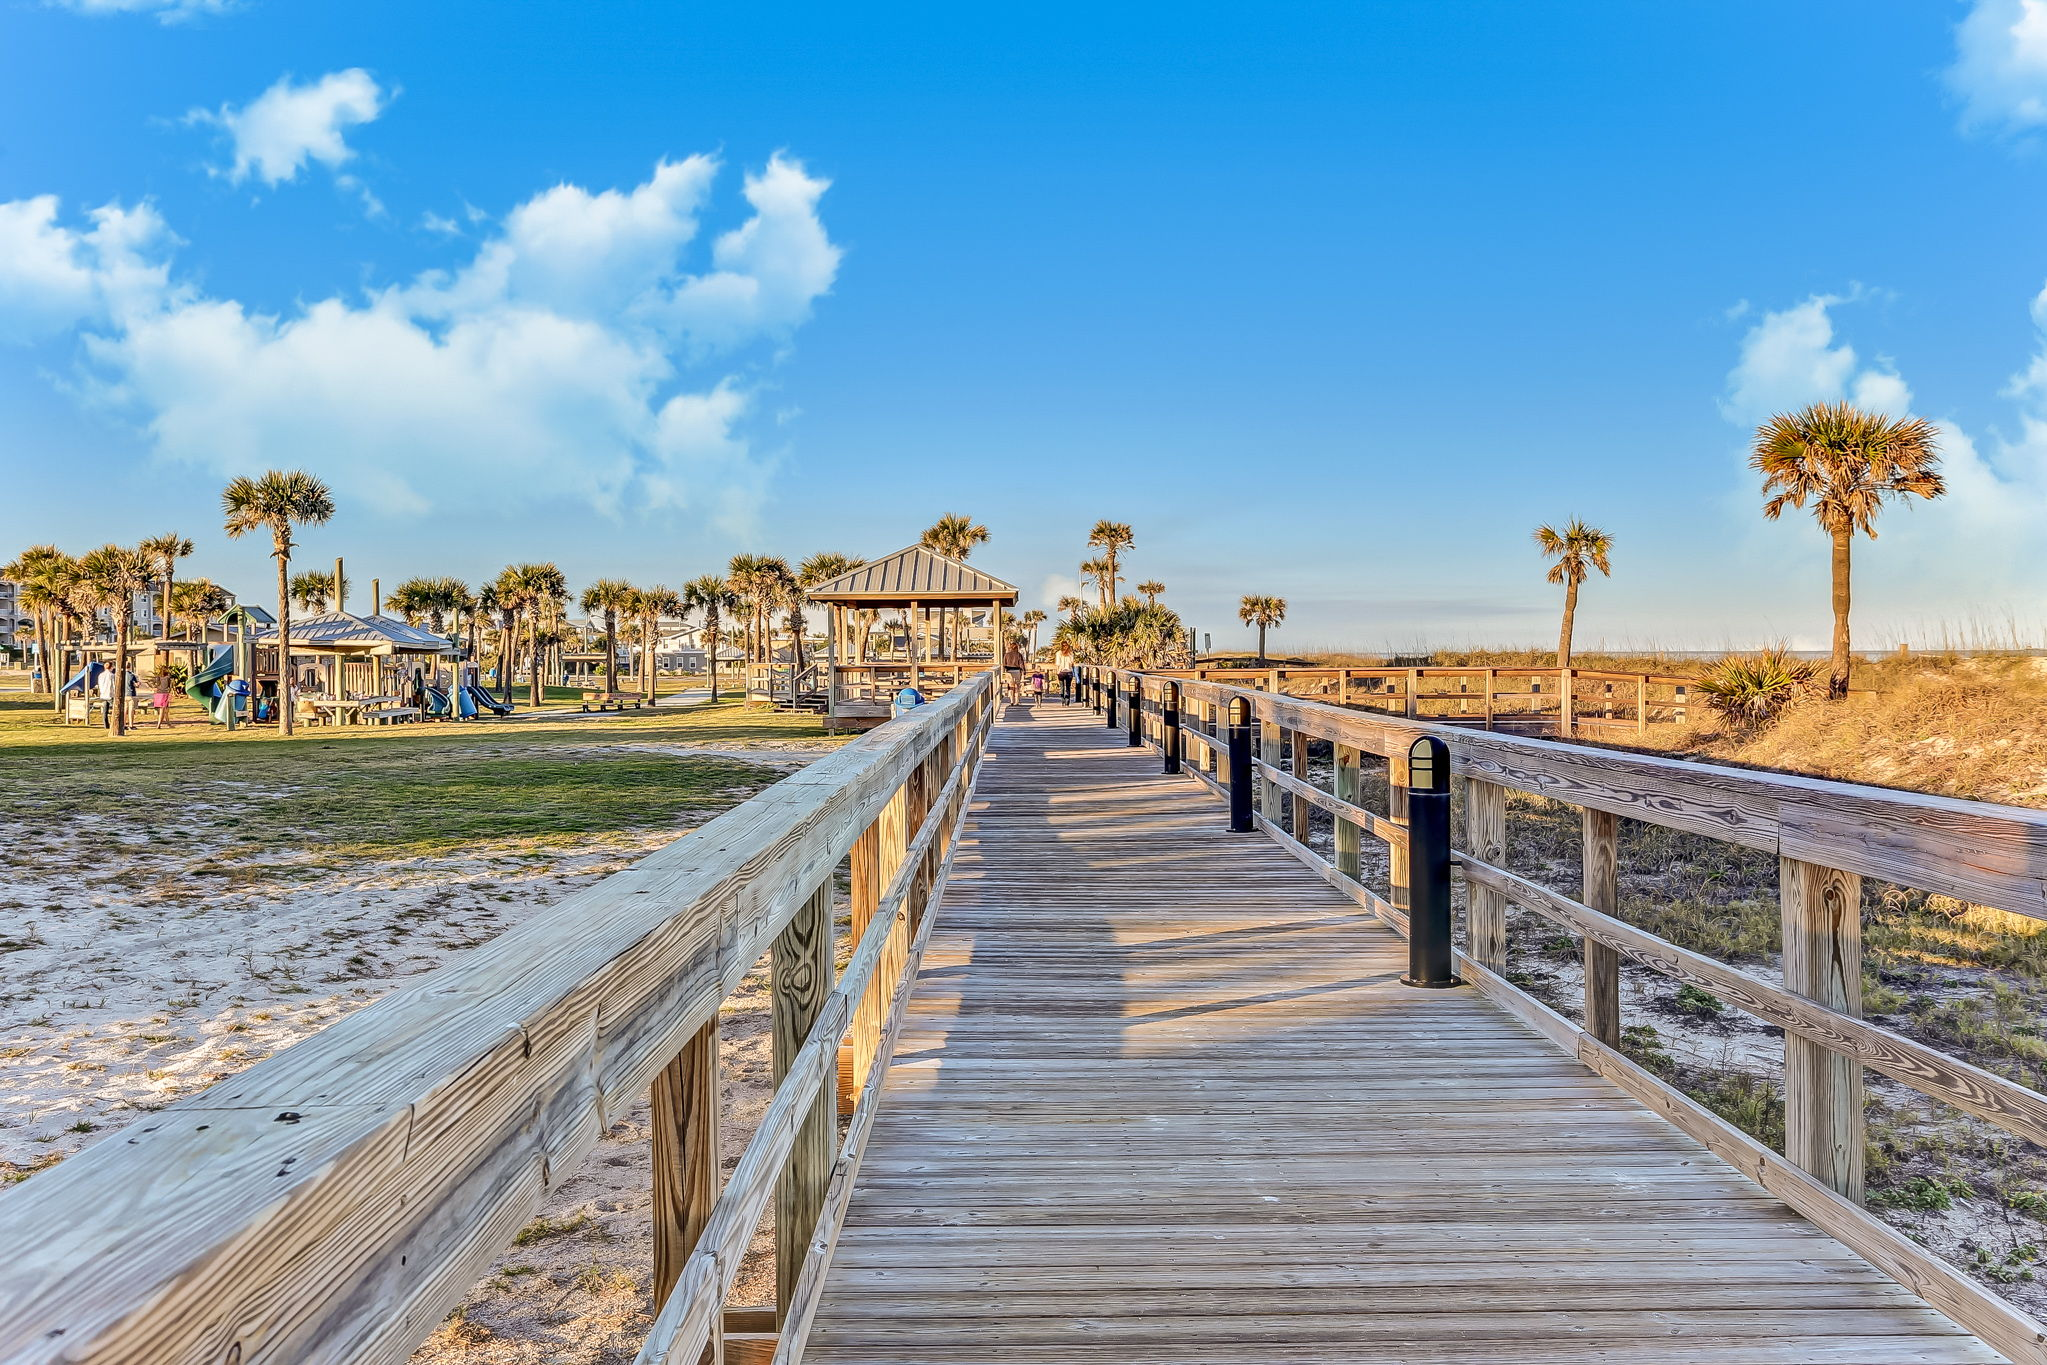 The pristine beaches of Amelia Island, only one mile away